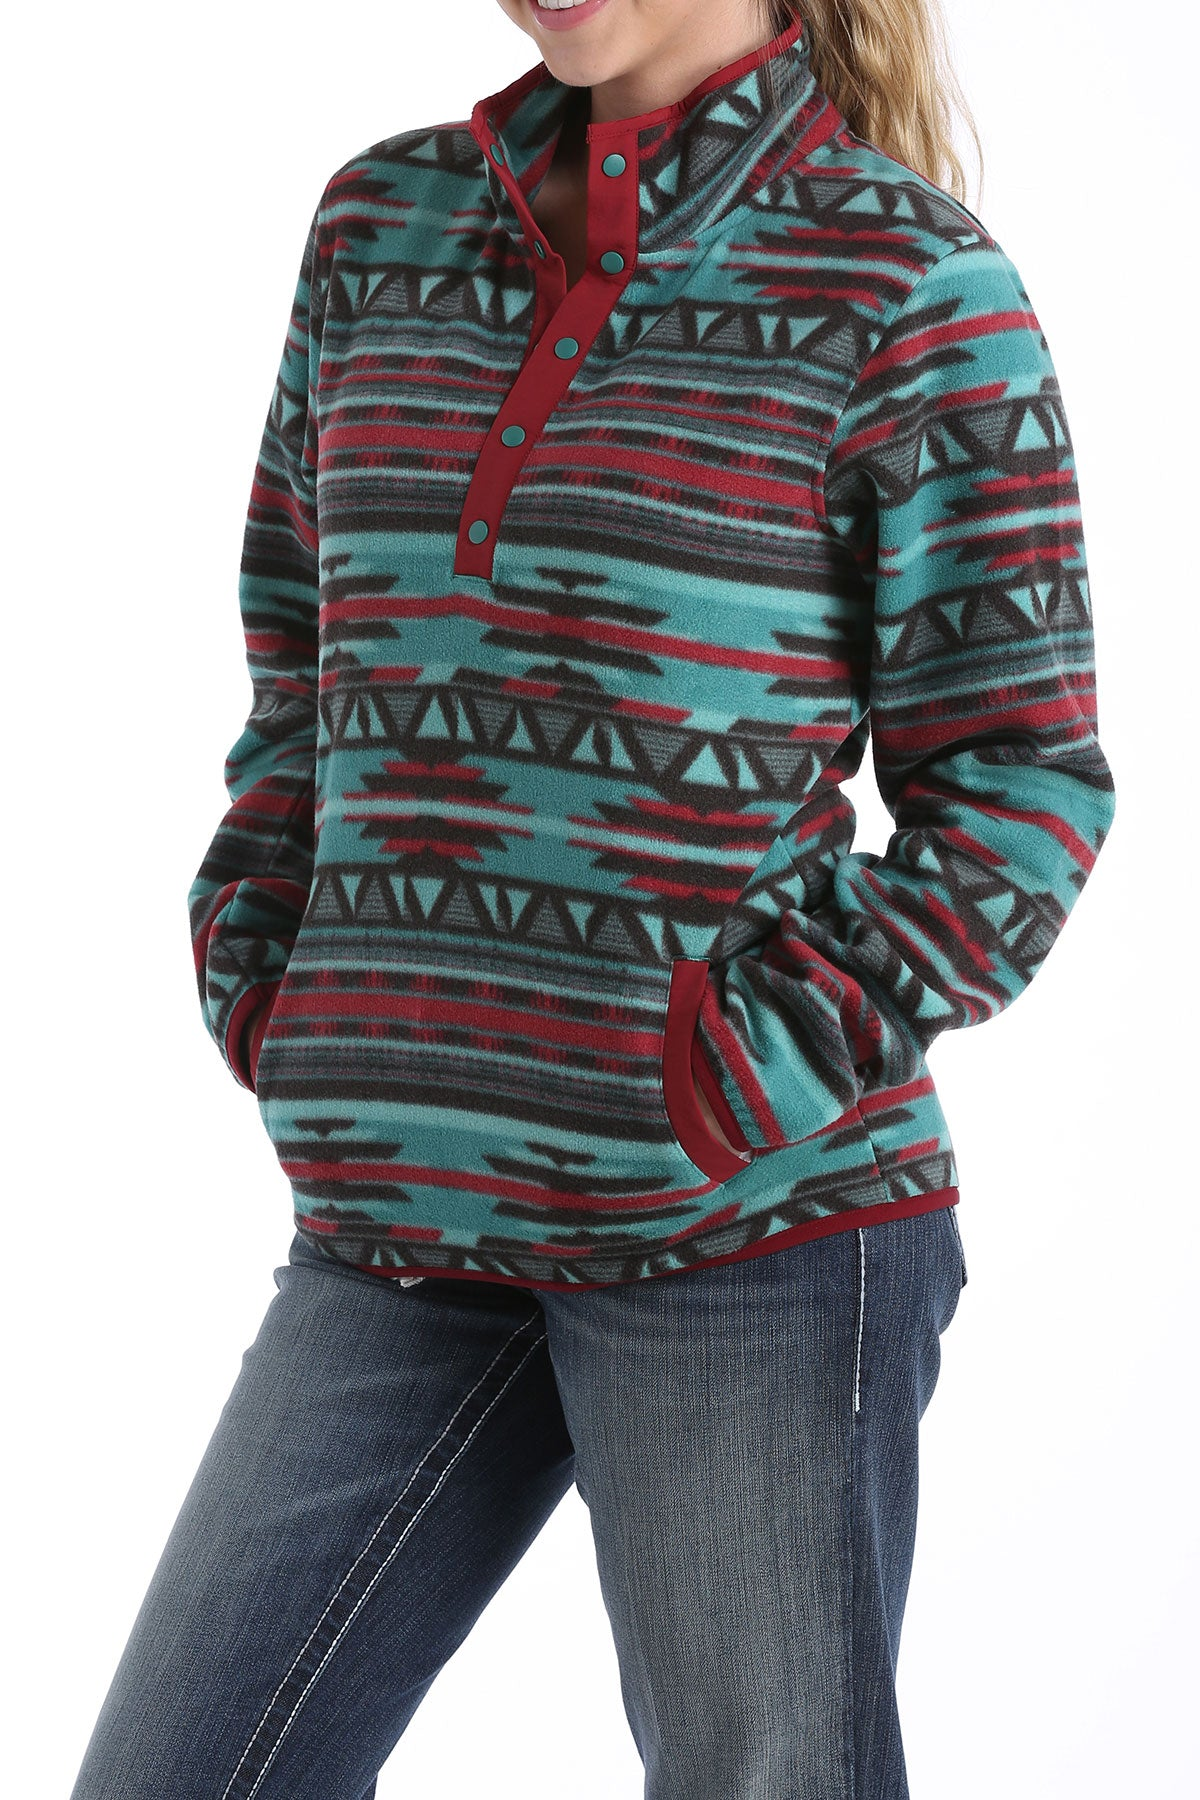 'Cinch' MAK9820001 - Women's Printed Polar Fleece Pullover - Teal / Burgundy